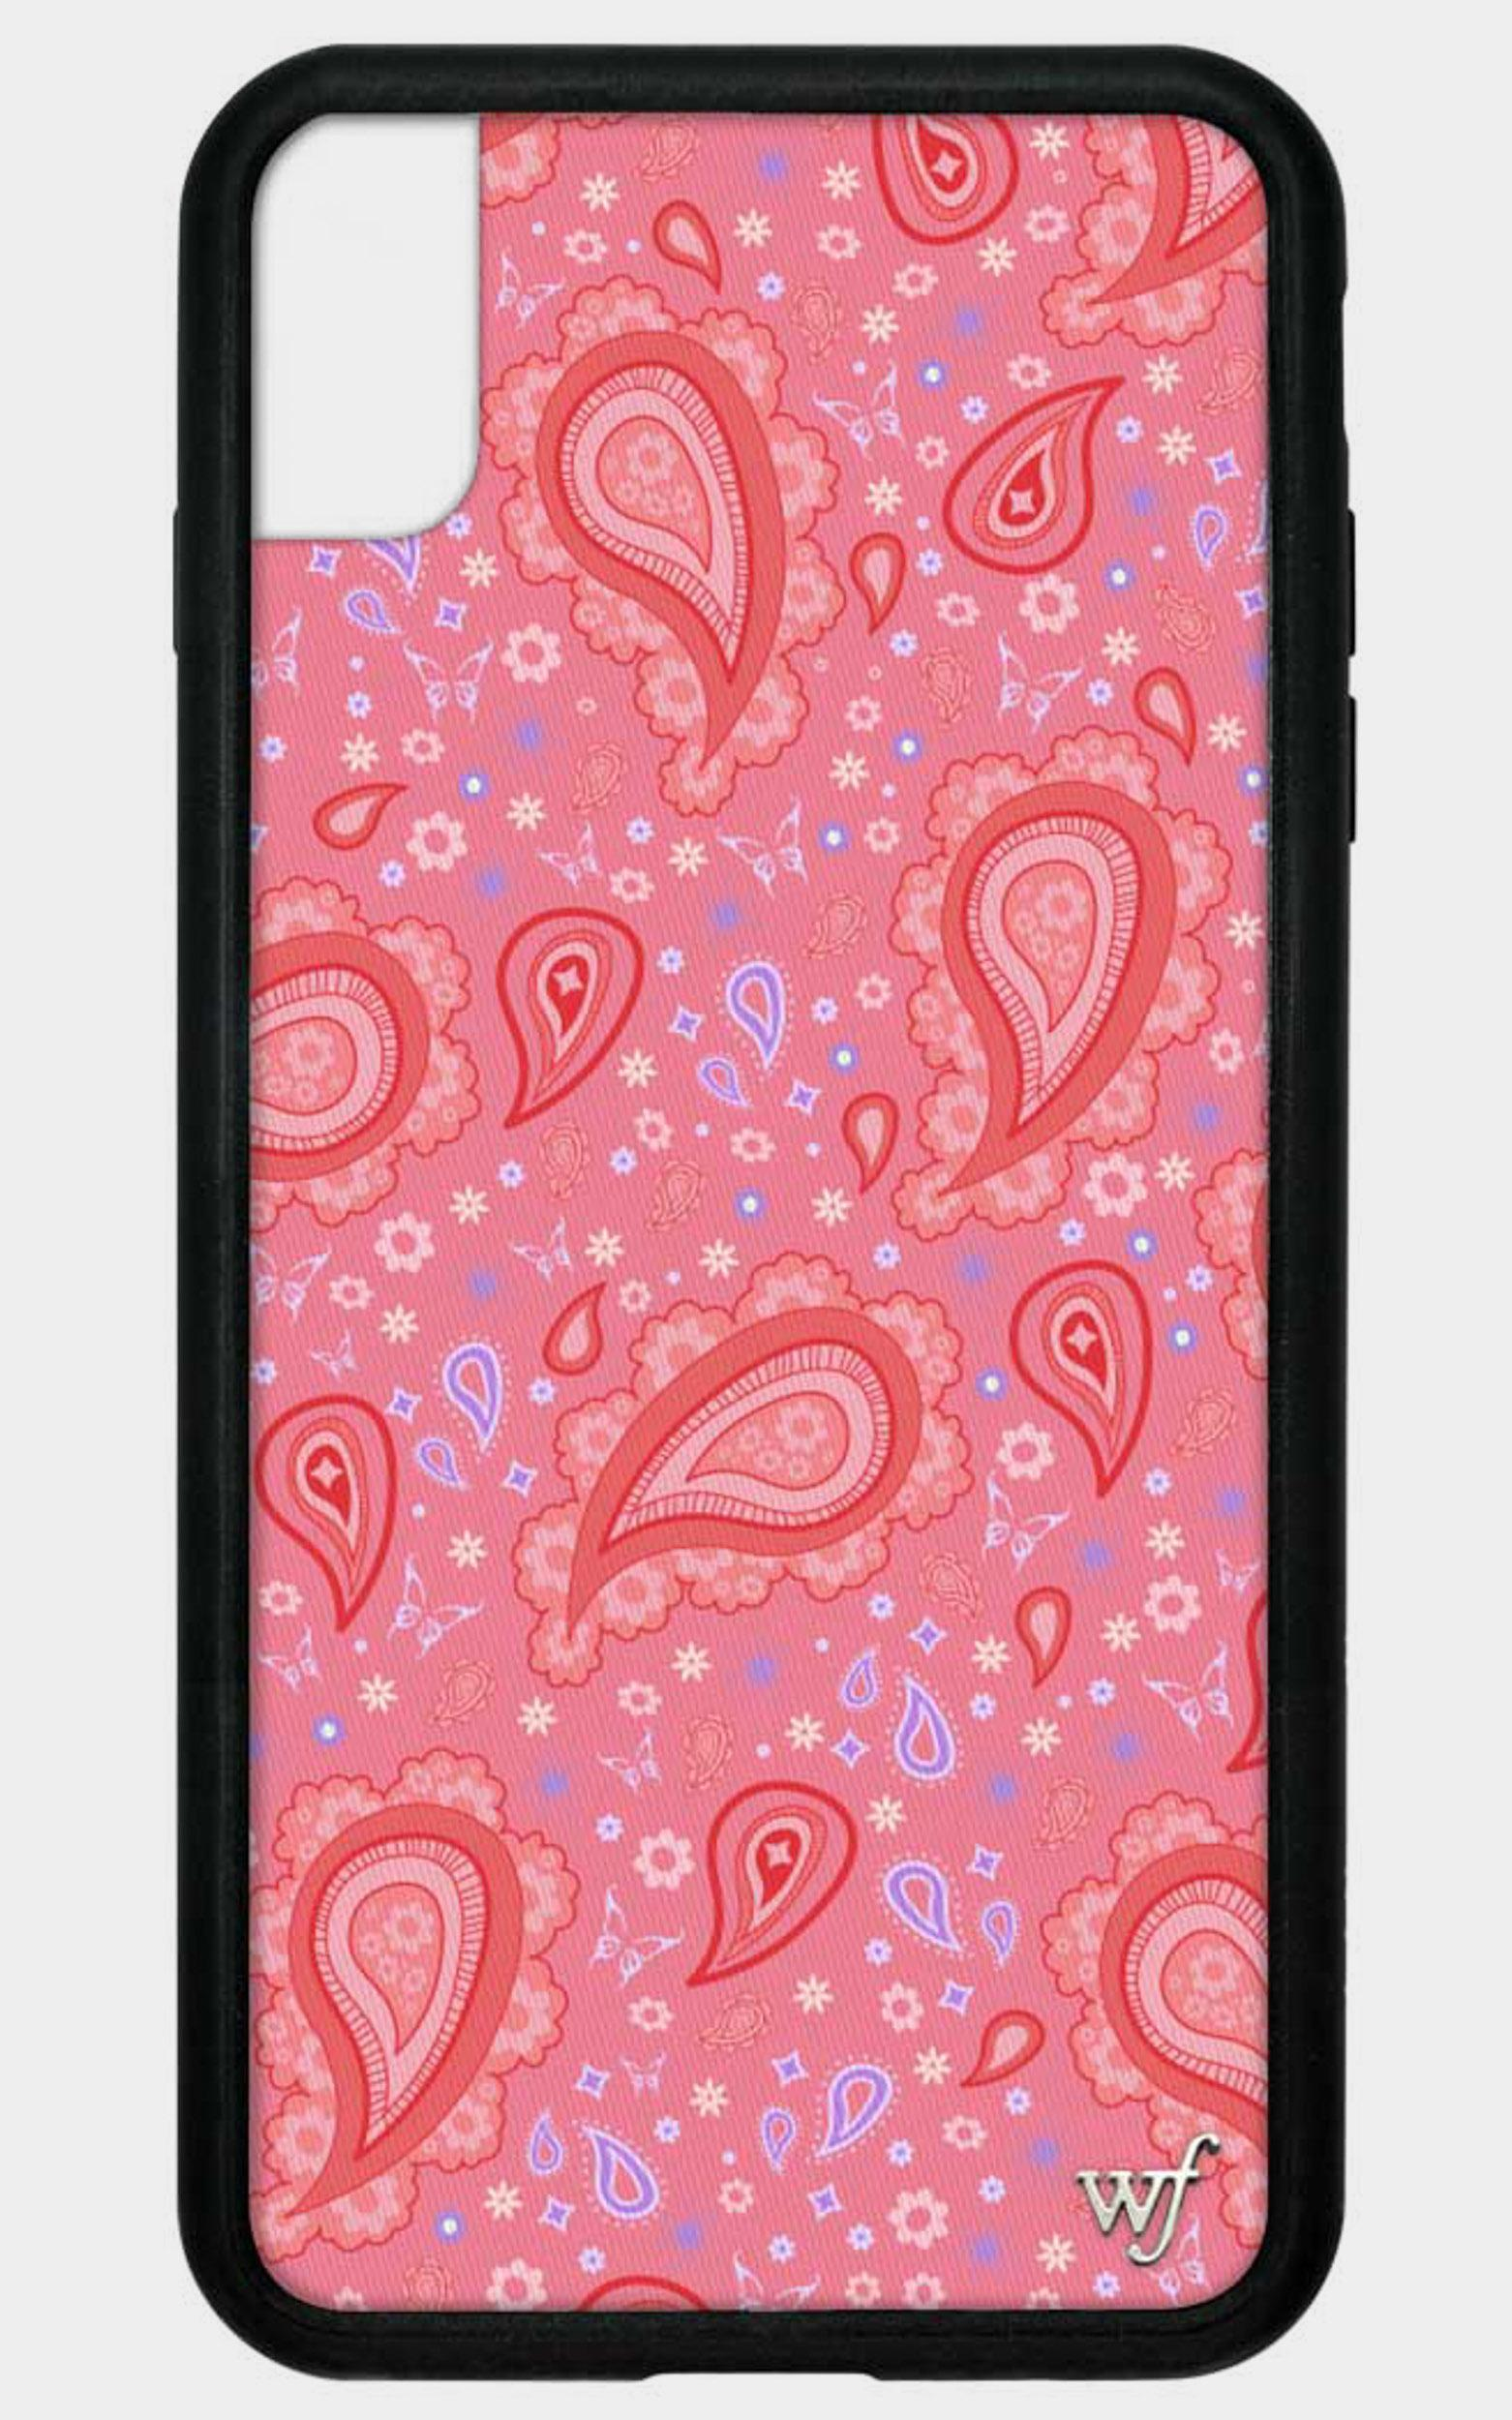 Wildflower - Iphone Case in Strawberry Paisley - 8, RED2, hi-res image number null